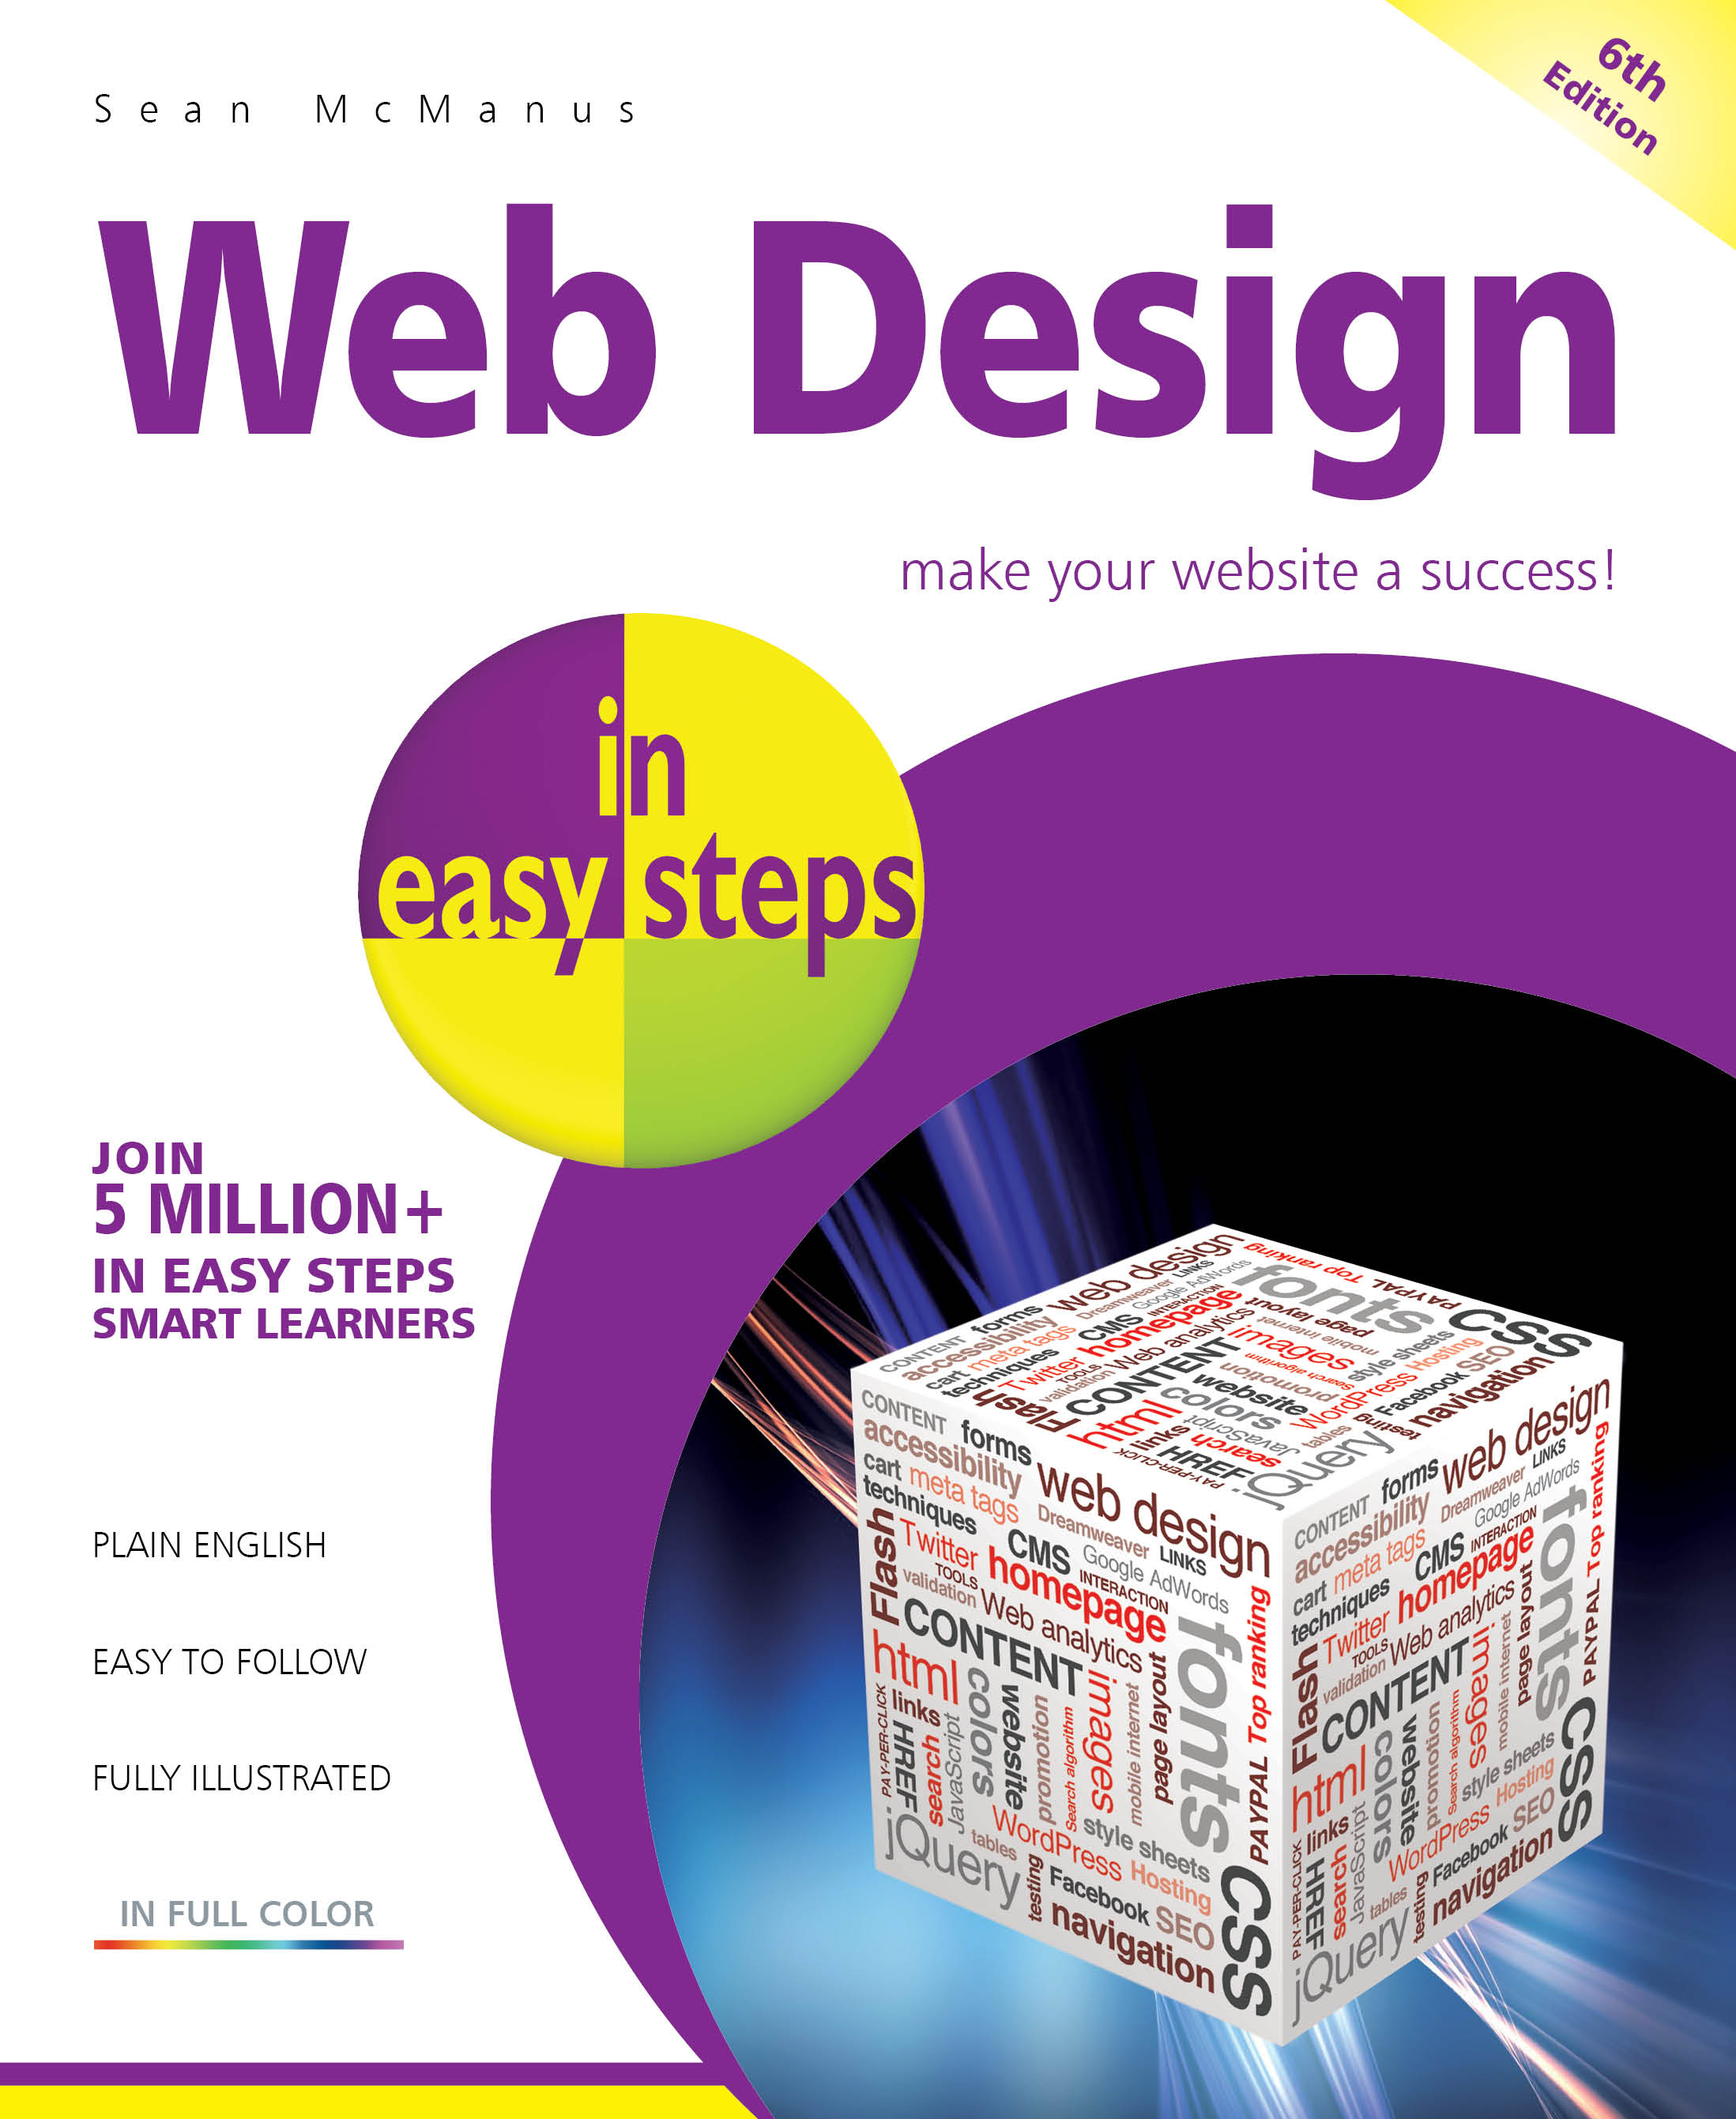 Web Design in easy steps, 6th edition, PDF version